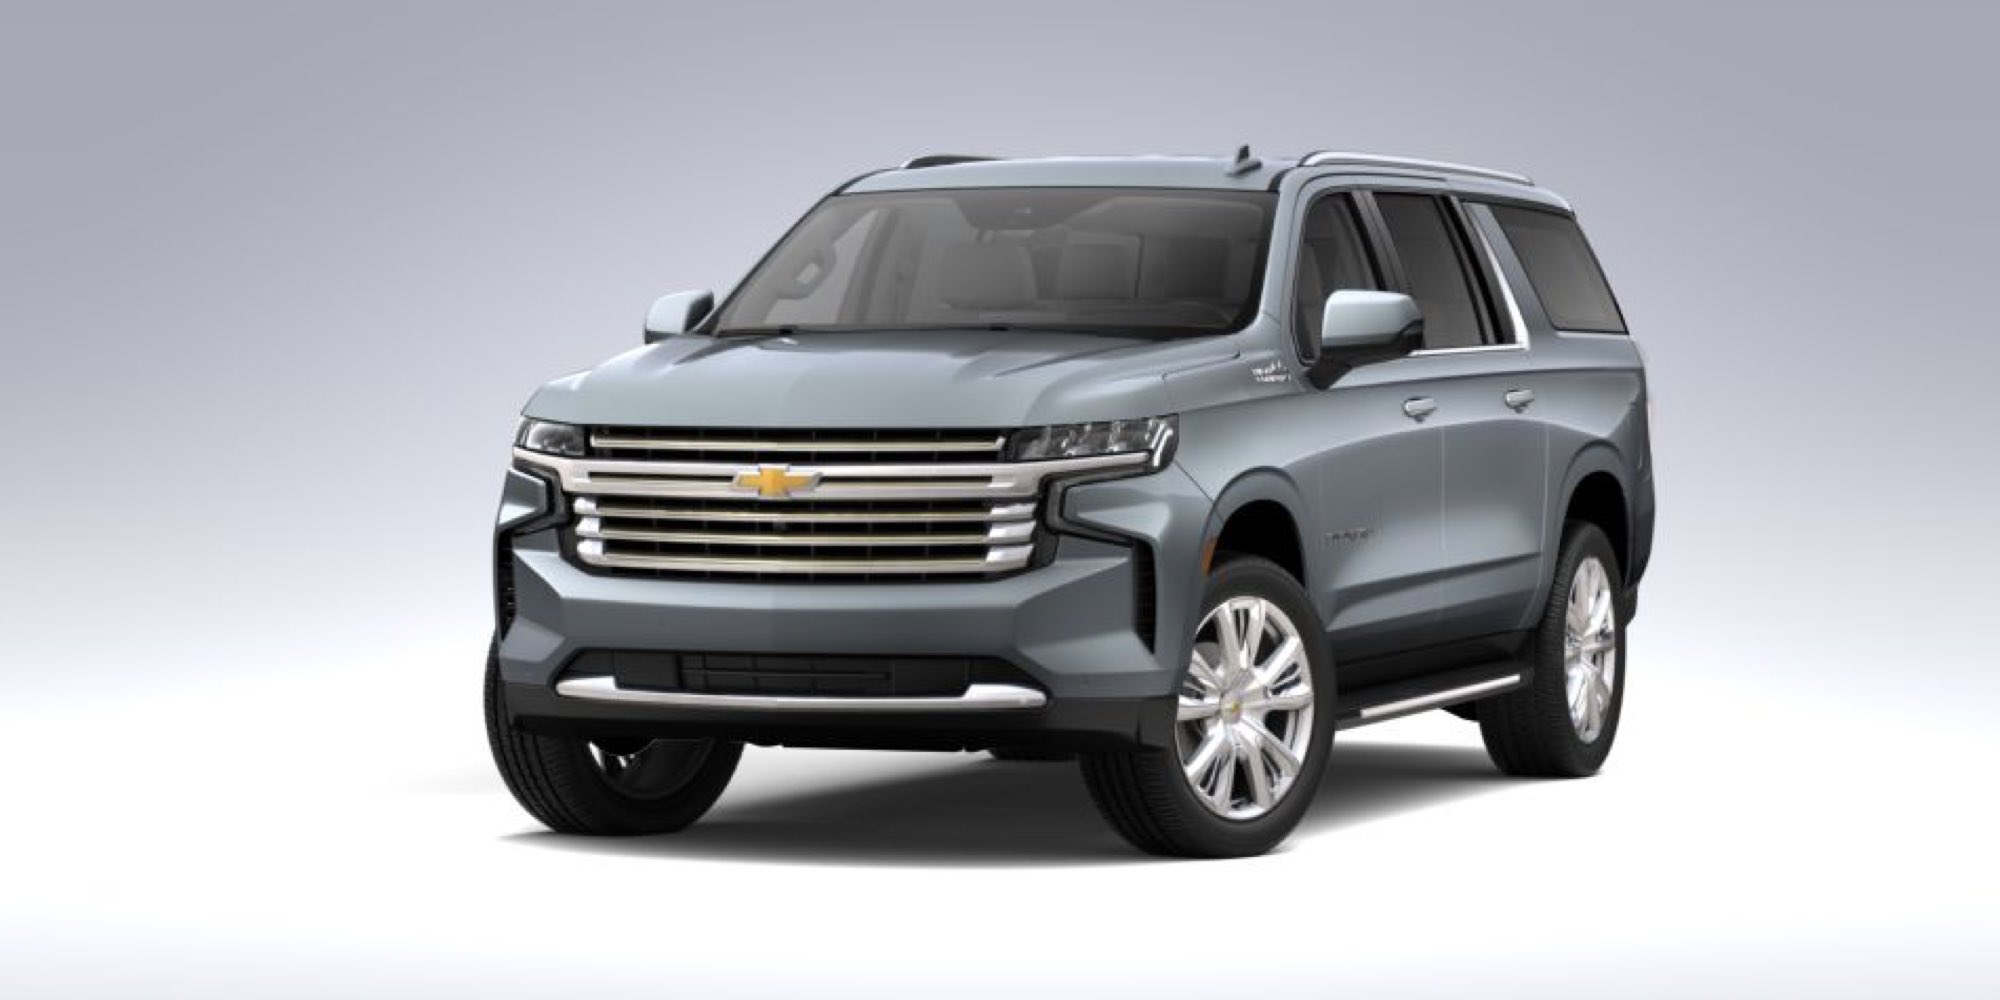 2021 Chevrolet Suburban in Satin Steel Metallic